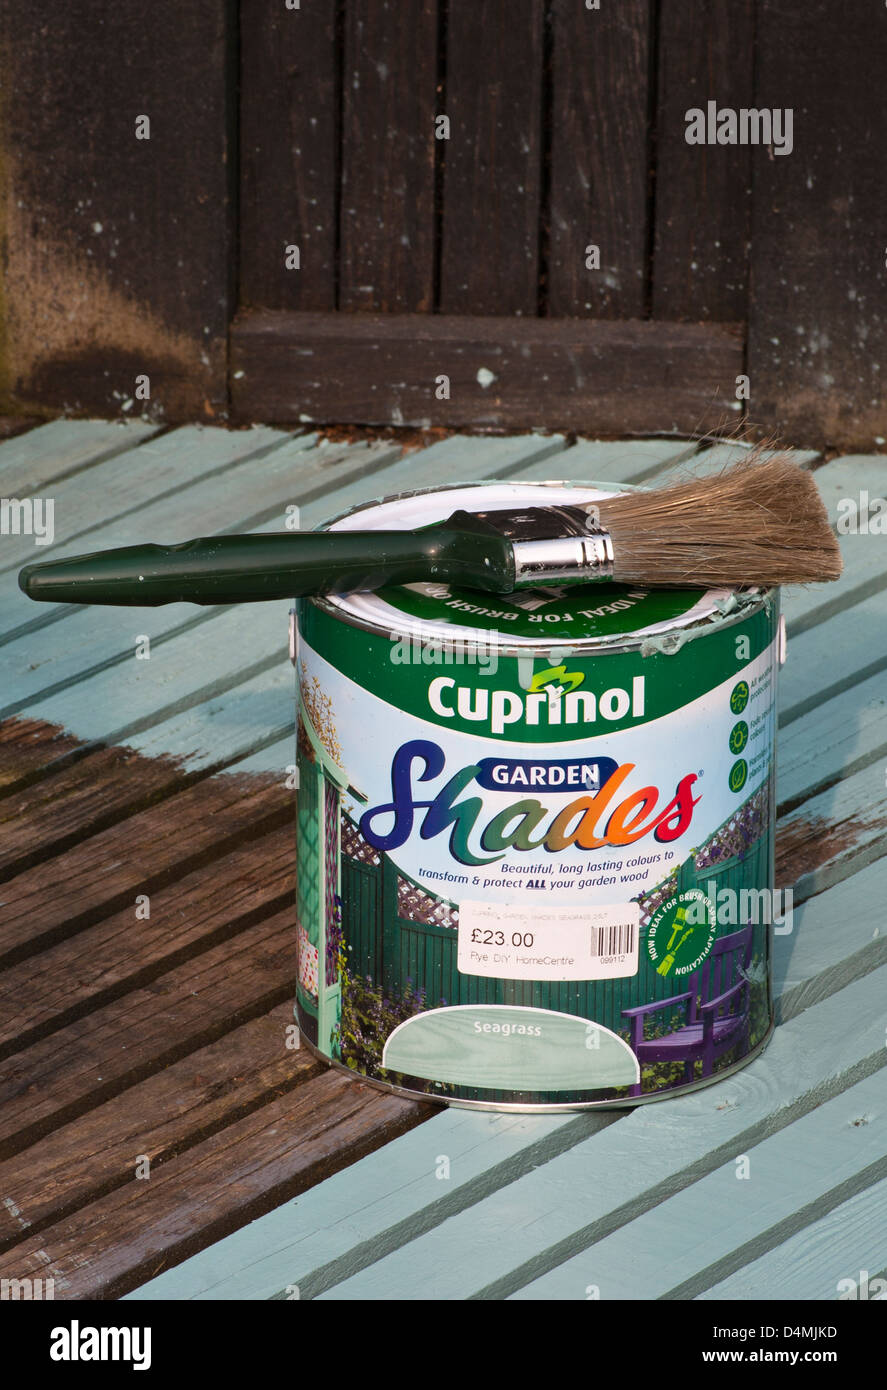 Paint Brush And A Tin Of Cuprinol Garden Wood Paint On Wooden Decking Stock Photo Royalty Free